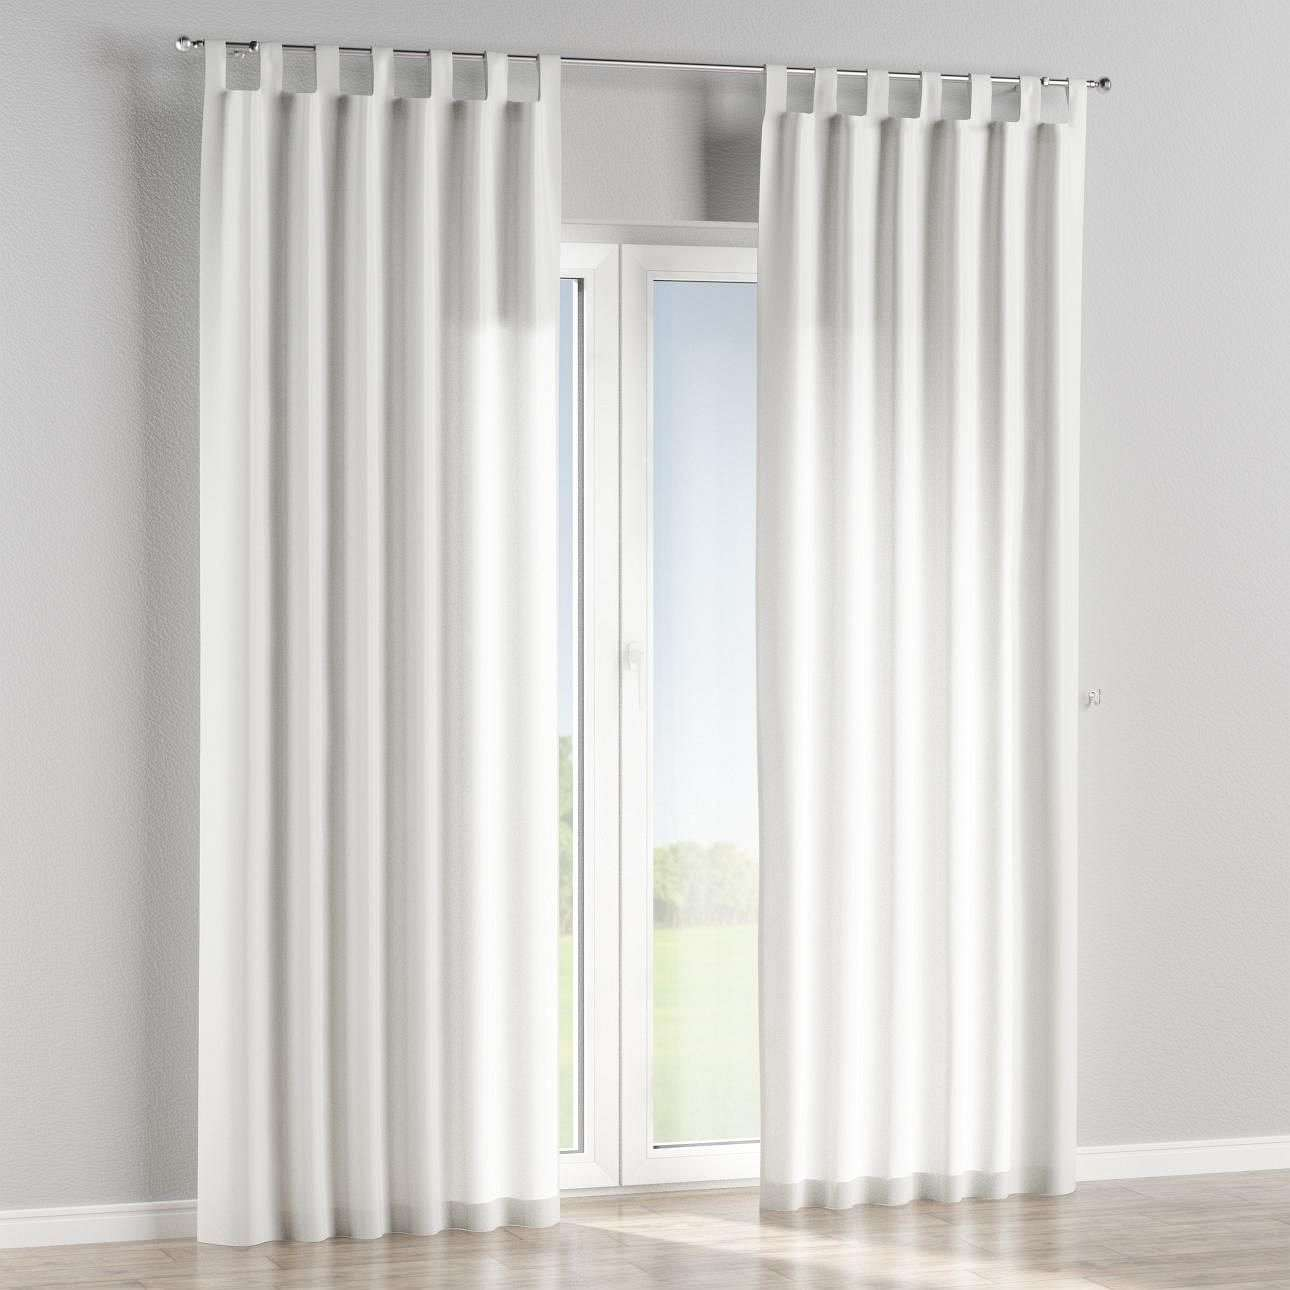 Tab top curtains in collection Flowers, fabric: 311-08